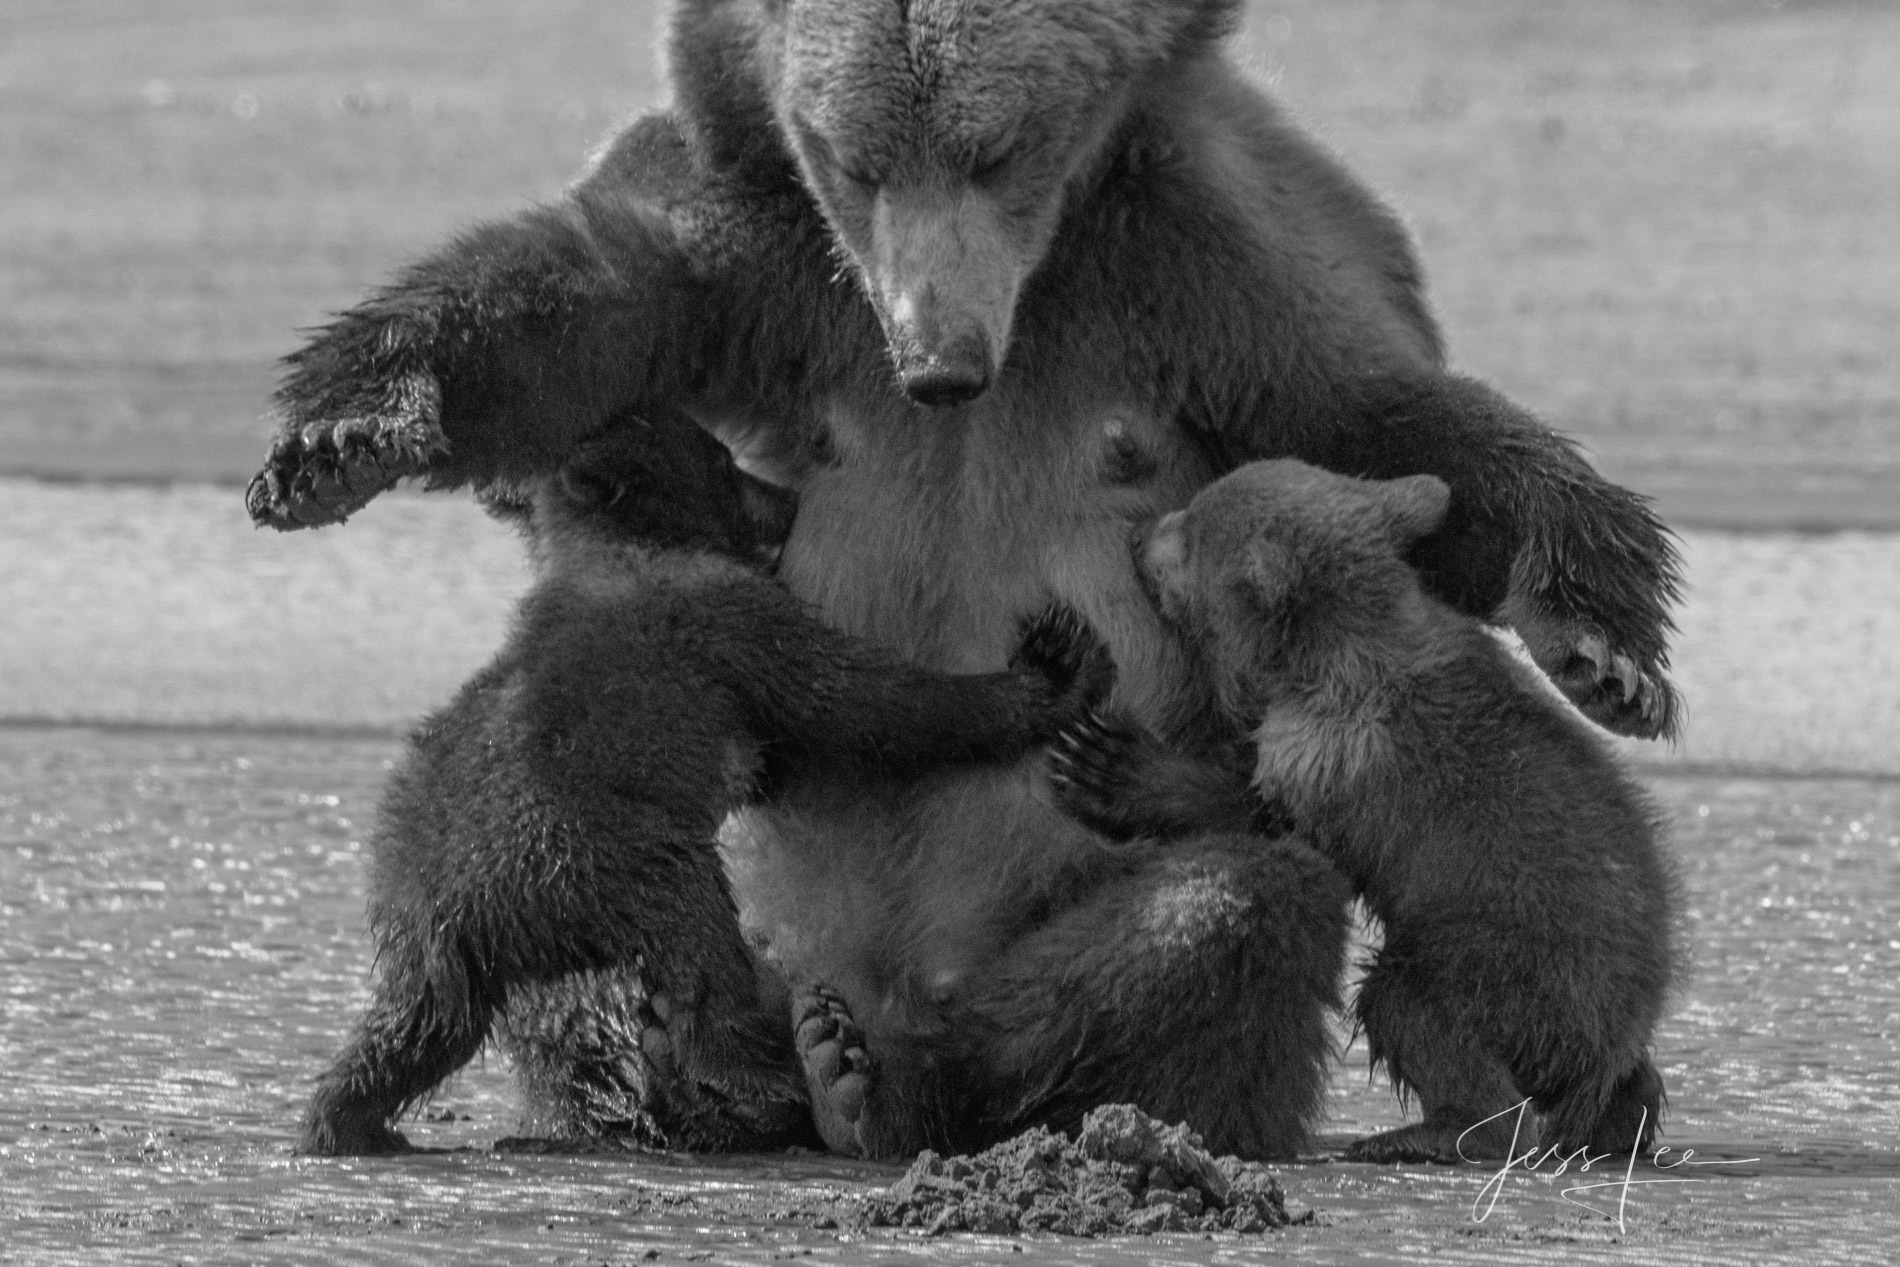 Grizzly Bear nursing Black and White Gallery Print